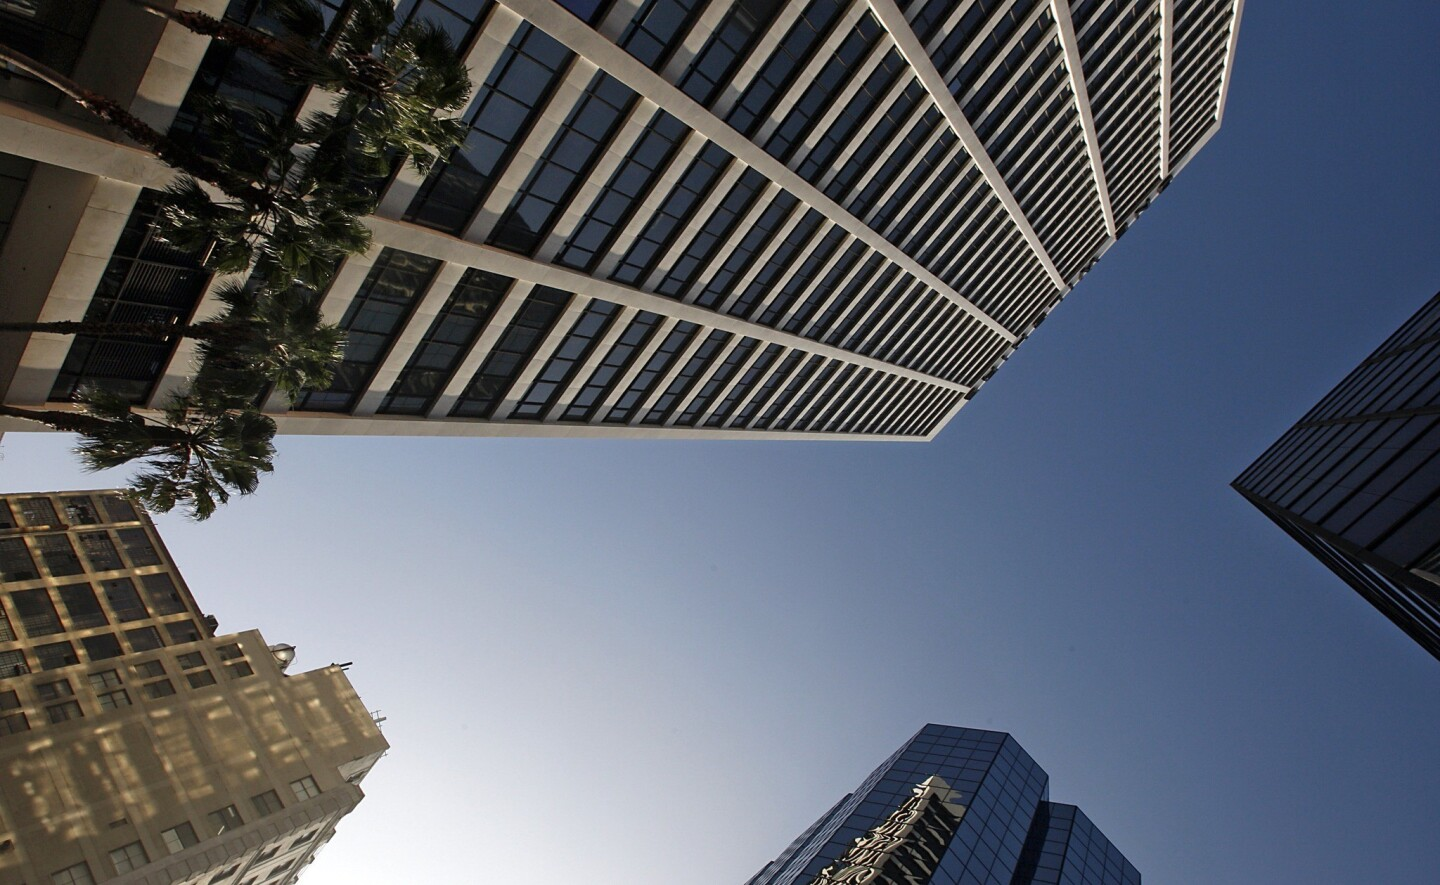 """One Wilshire, shown at top, at the eastern end of Wilshire Boulevard may look like a typical office building, but it's actually what's known as a """"telecom hotel,"""" holding servers, routers and other equipment for telecommunications companies, Internet service providers and other digital firms."""